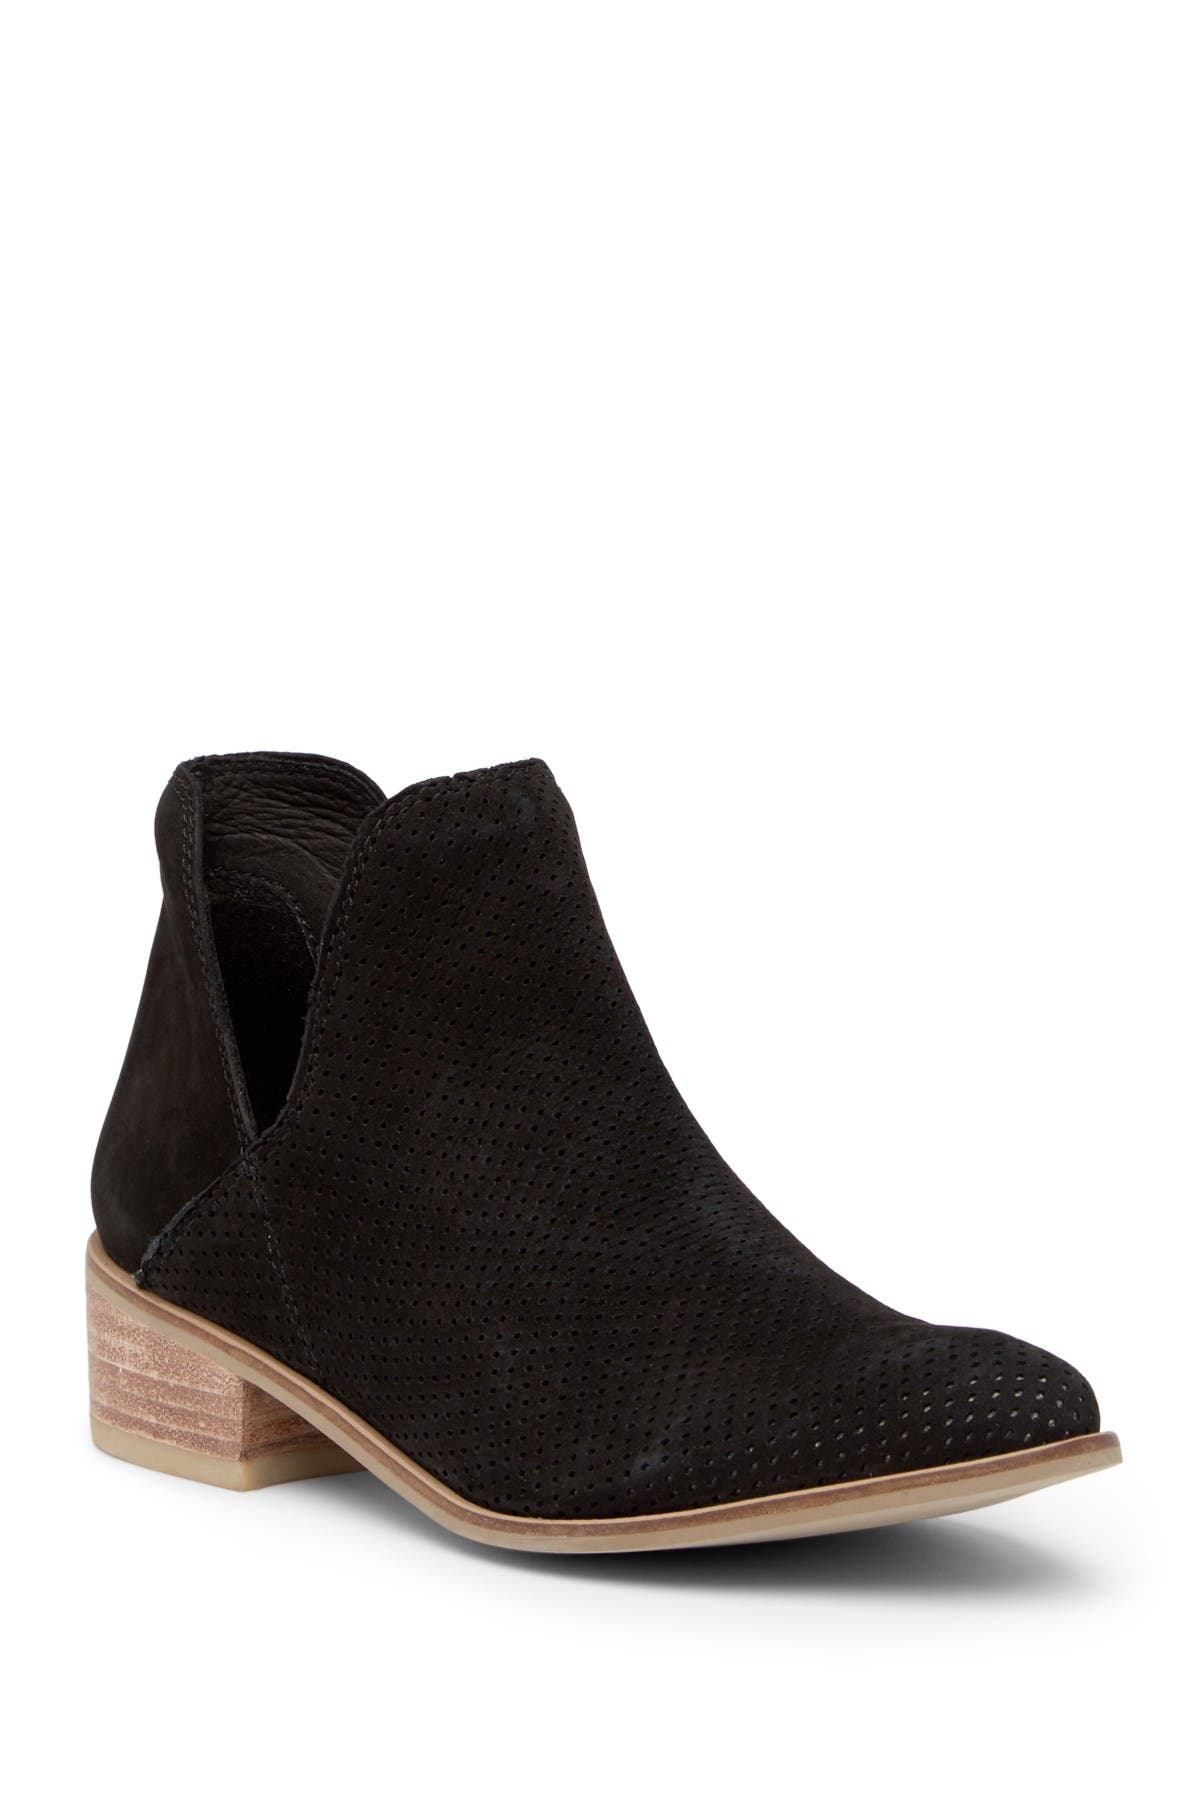 Image of Kaanas Thar Perforated Bootie